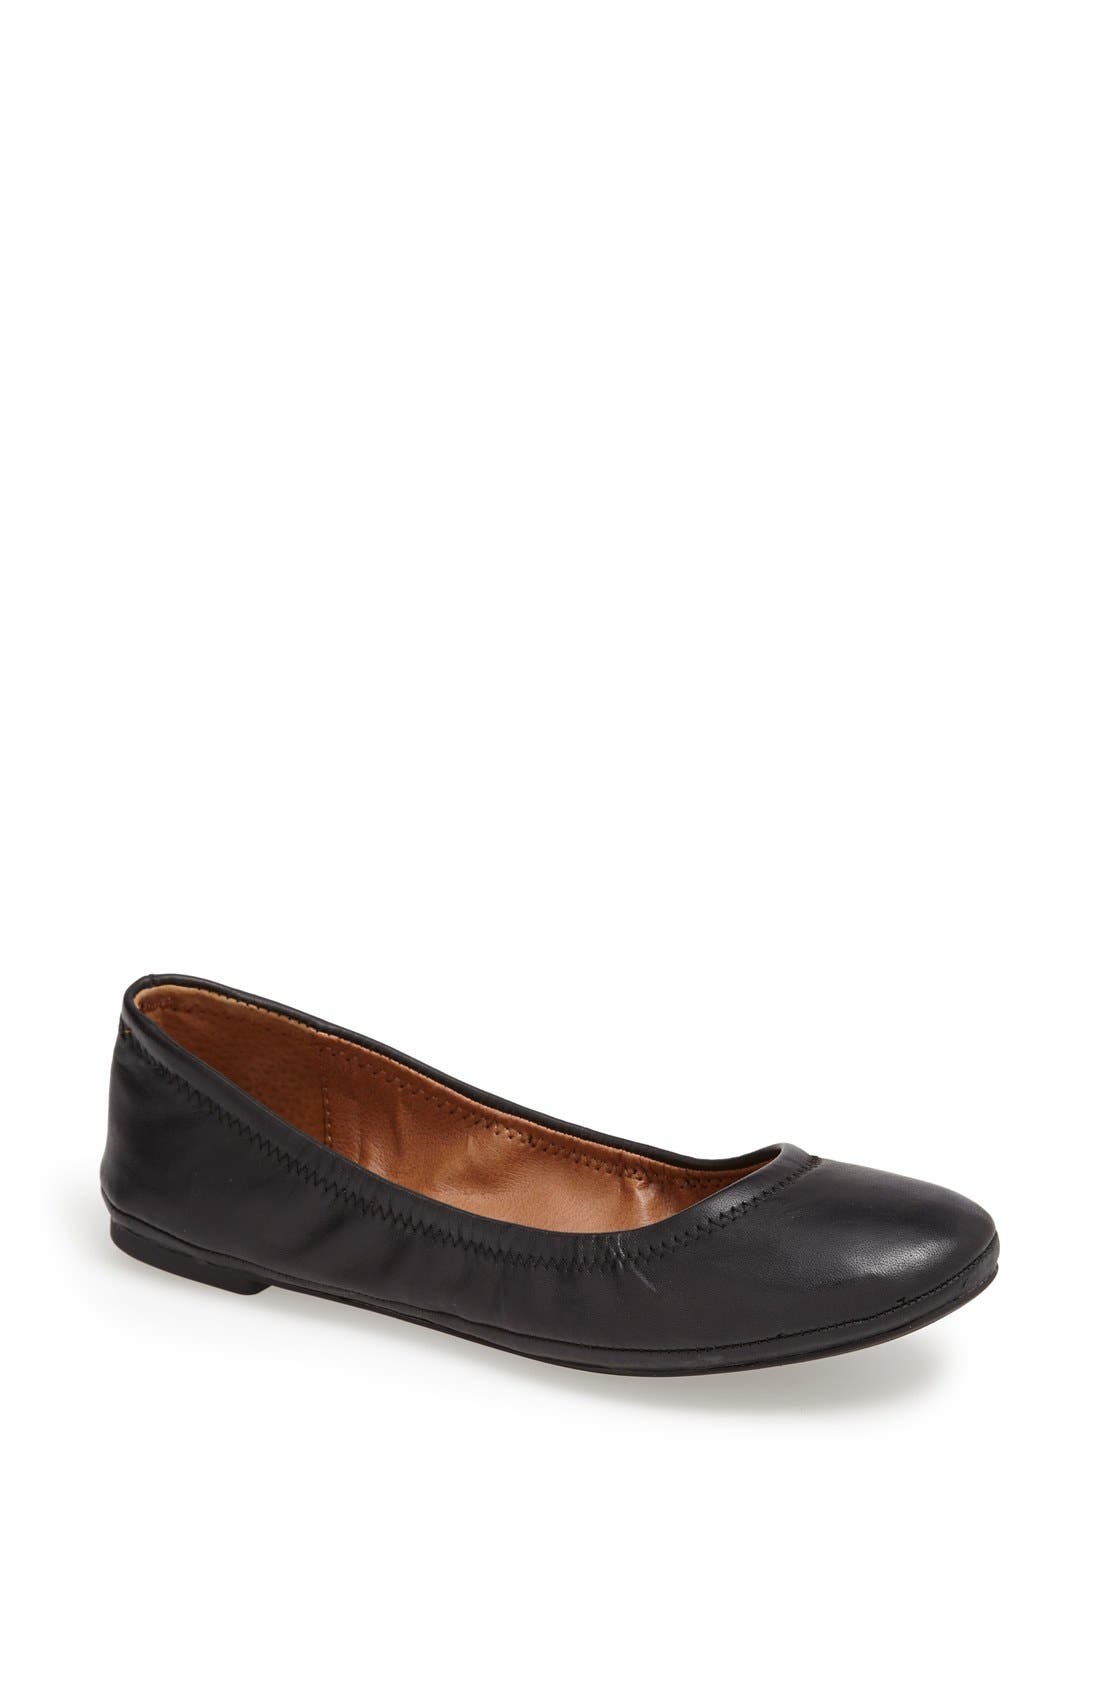 LUCKY BRAND,                             'Emmie' Flat,                             Main thumbnail 1, color,                             001